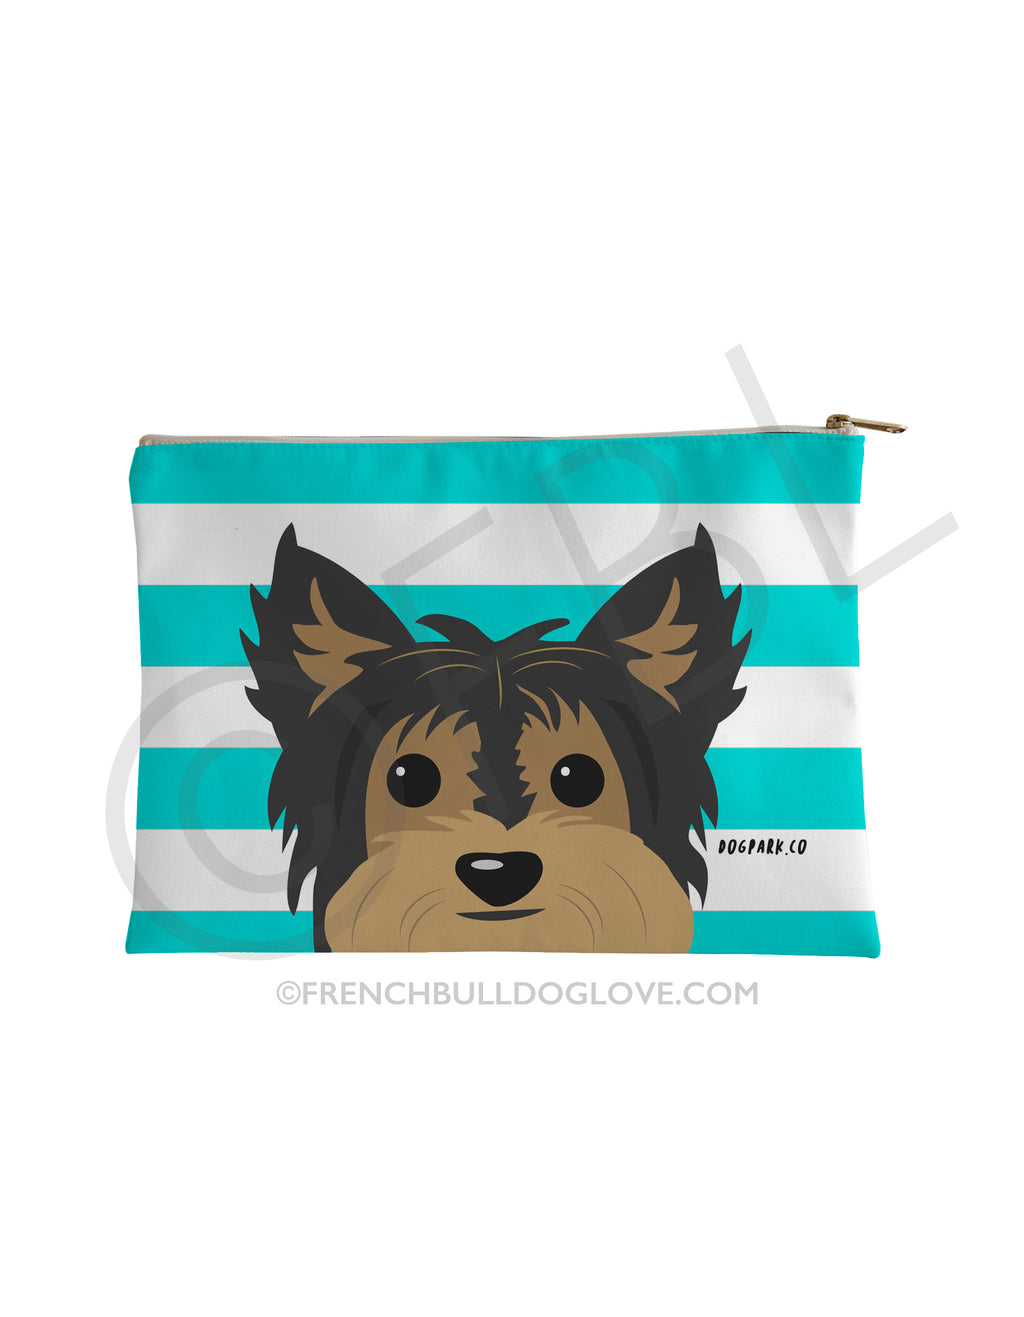 Classic Yorkie Pouch - Tan/Black - Small Accessory Pouch